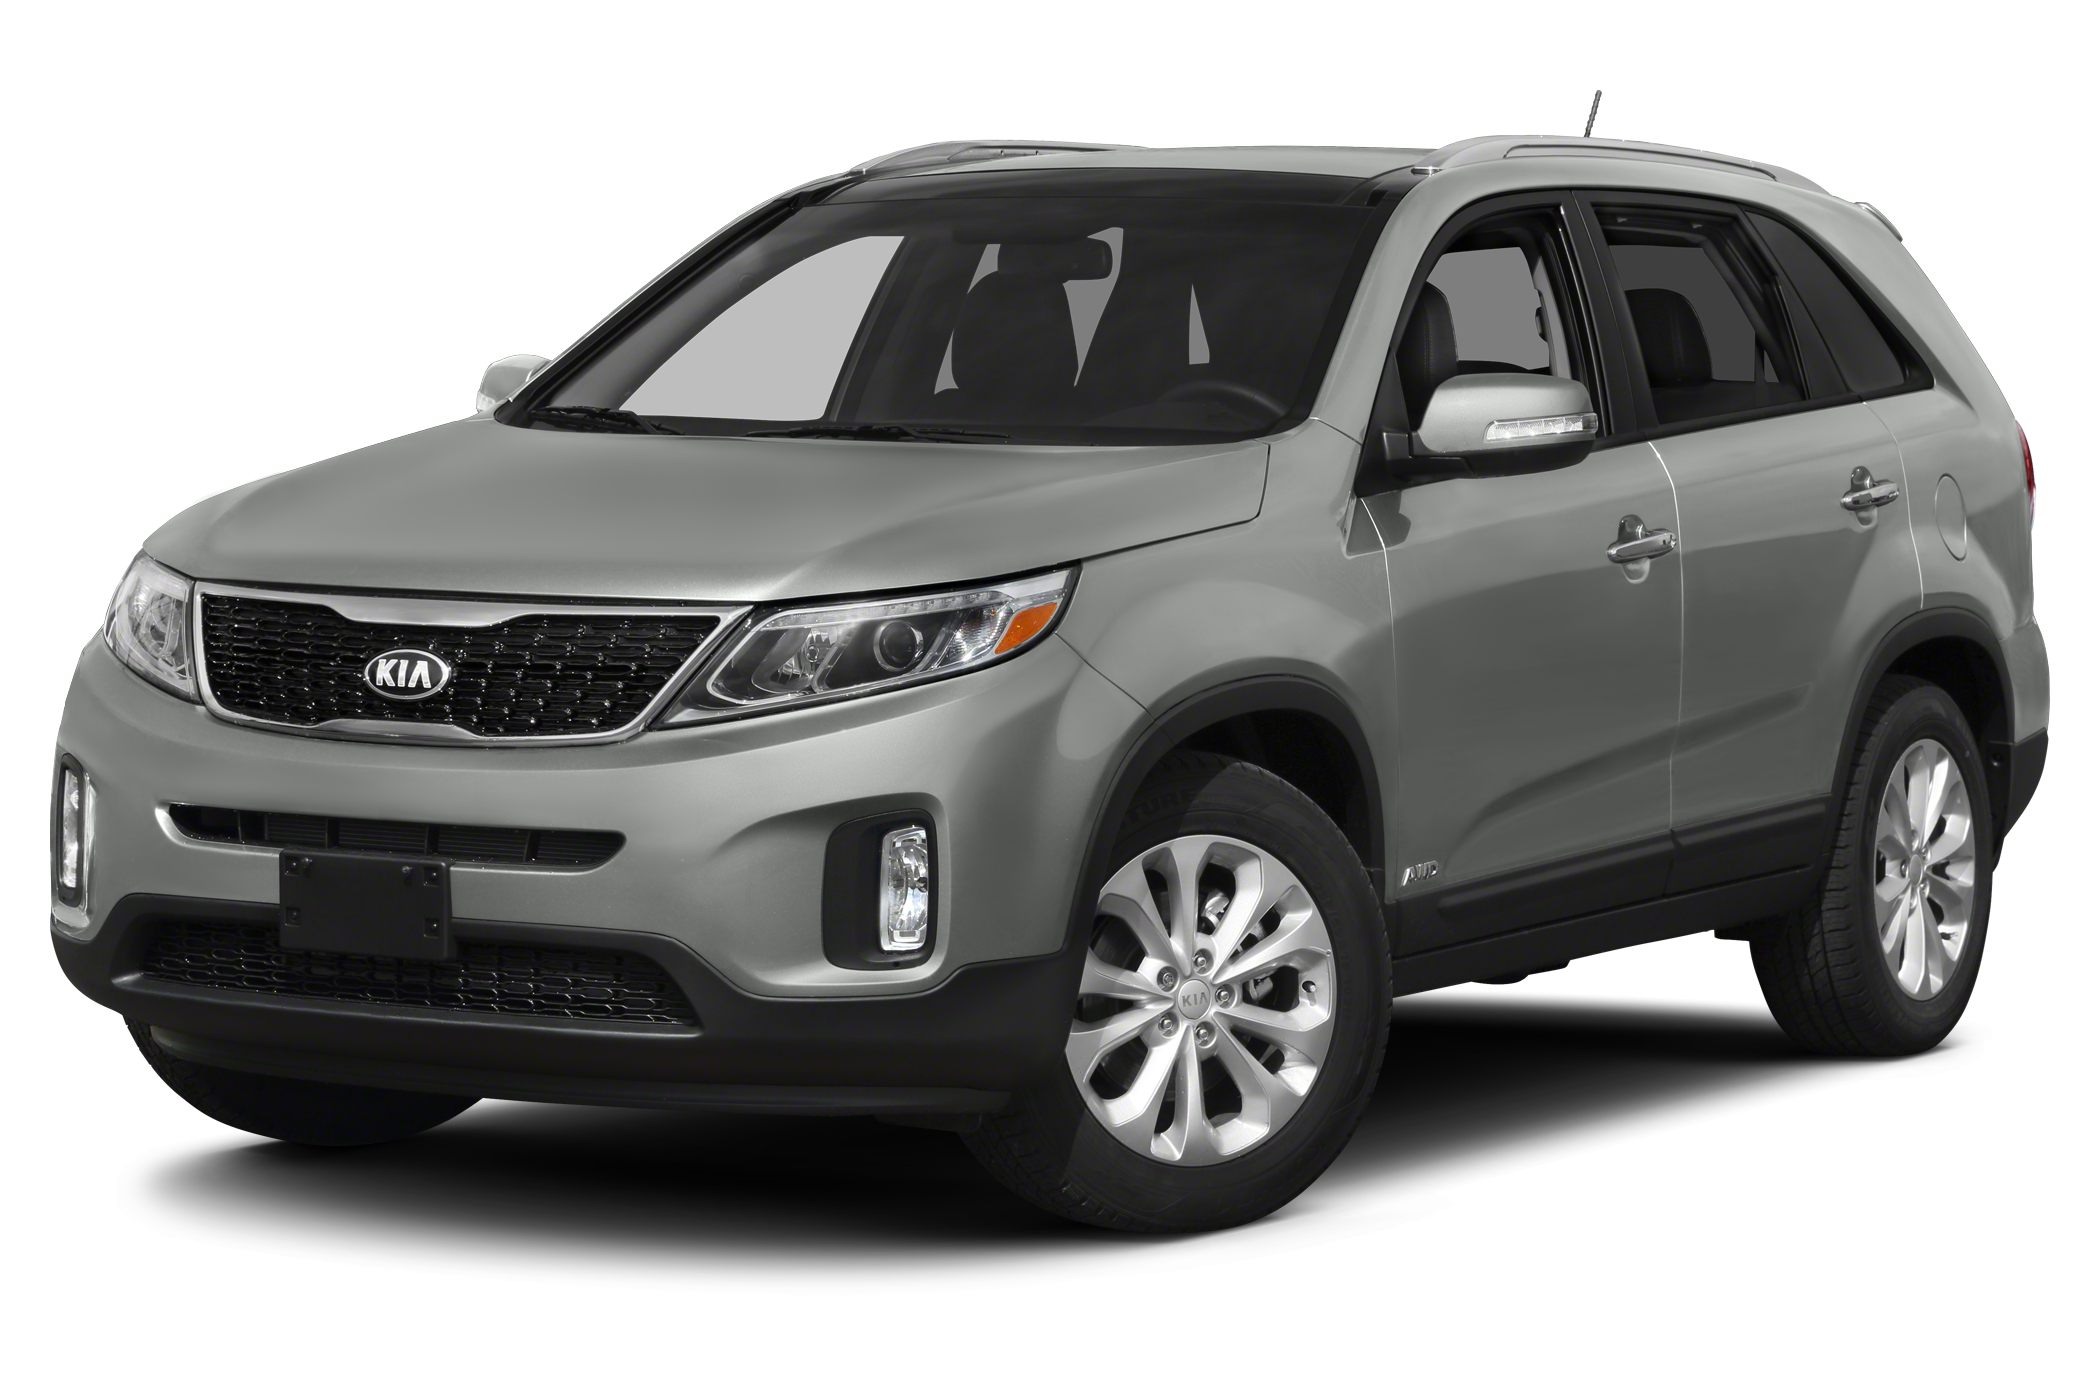 2014 Kia Sorento LX SUV for sale in Birmingham for $20,955 with 19,701 miles